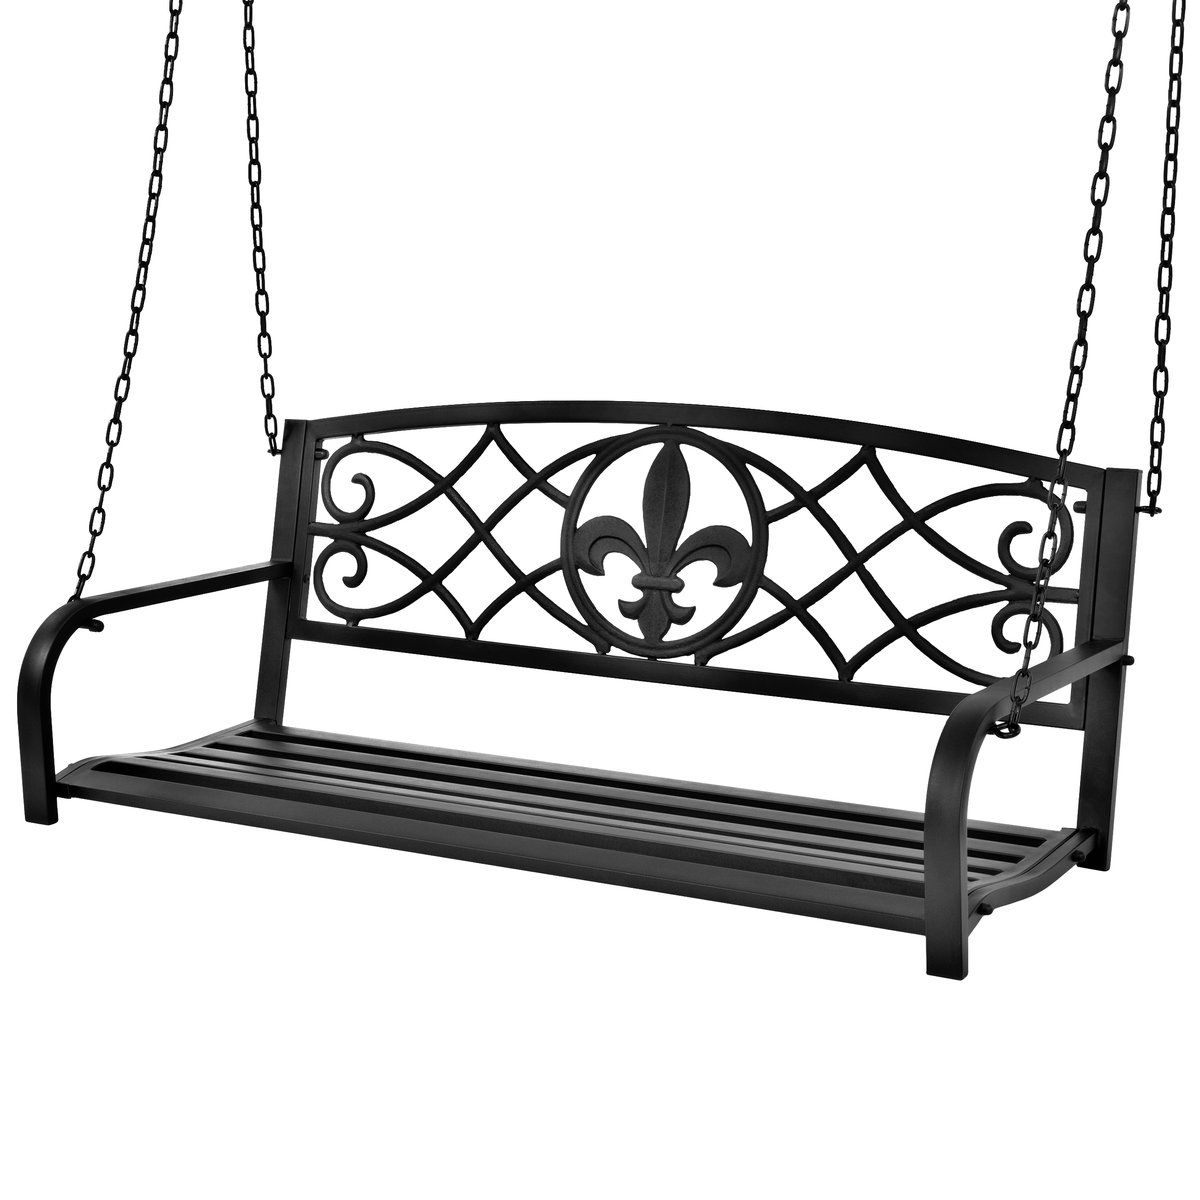 Best And Newest Outdoor Metal Hanging 2 Person Swing Bench W/ Fleur De Lis With 2 Person Black Steel Outdoor Swings (View 10 of 25)